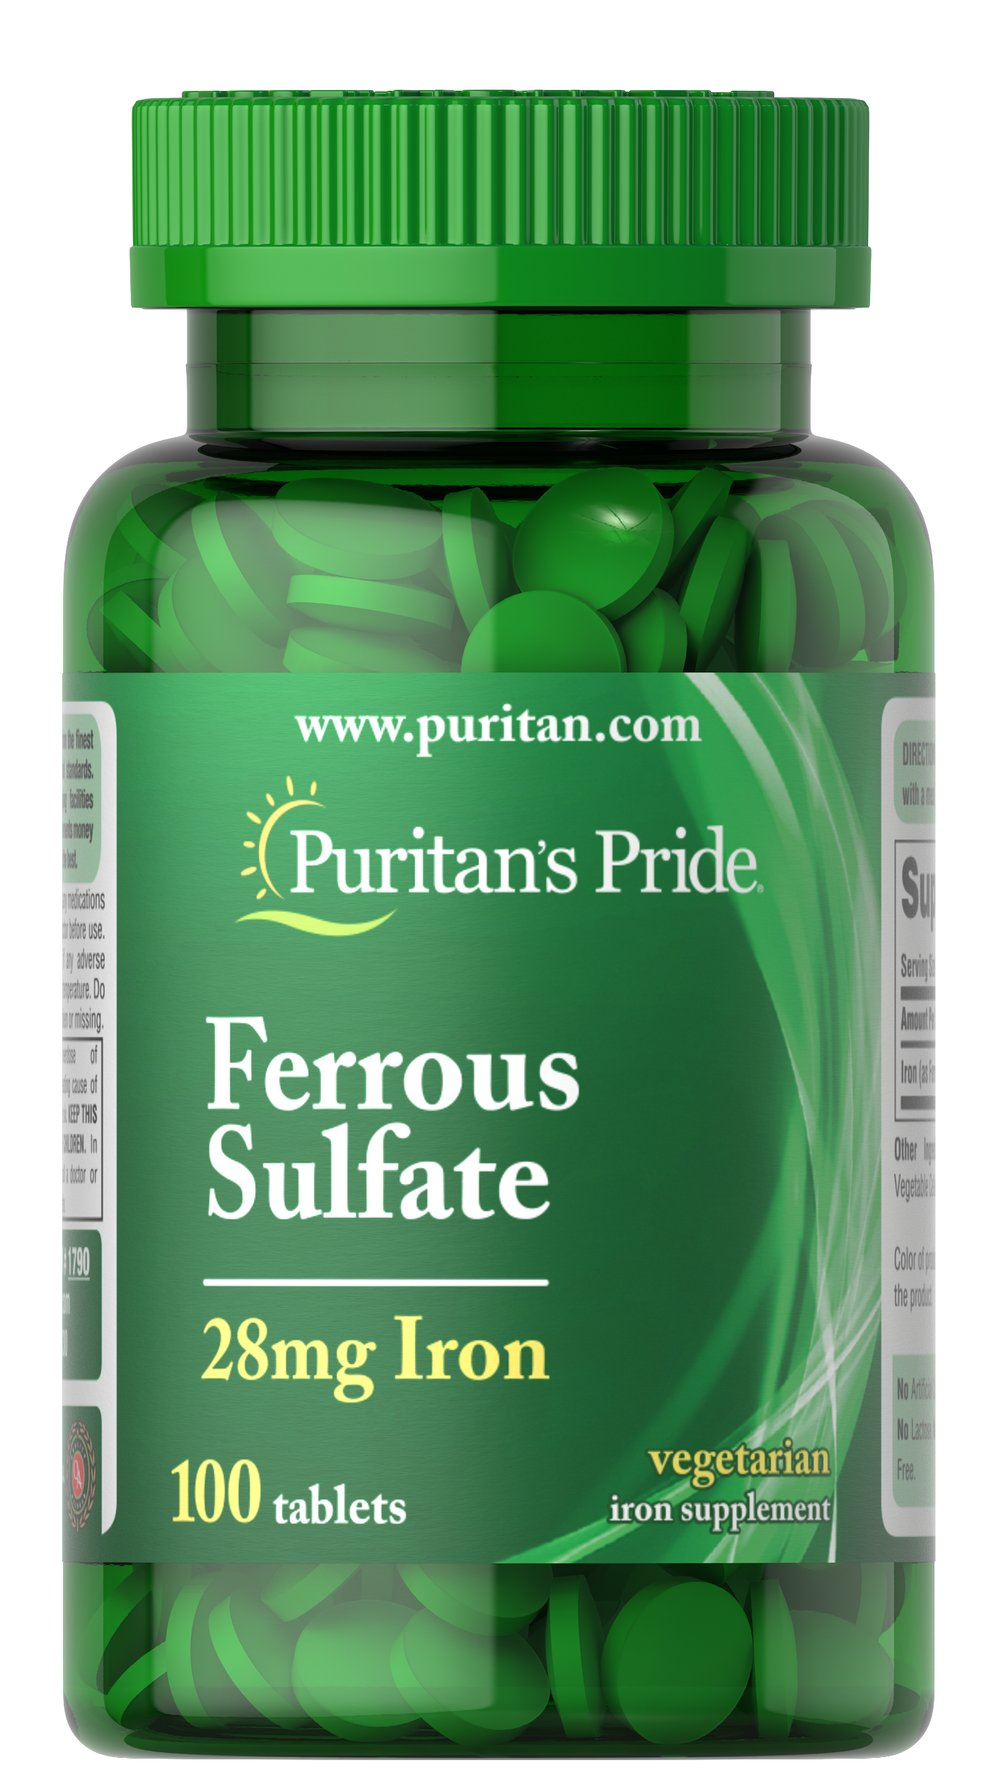 Iron Ferrous Sulfate 28 mg Thumbnail Alternate Bottle View